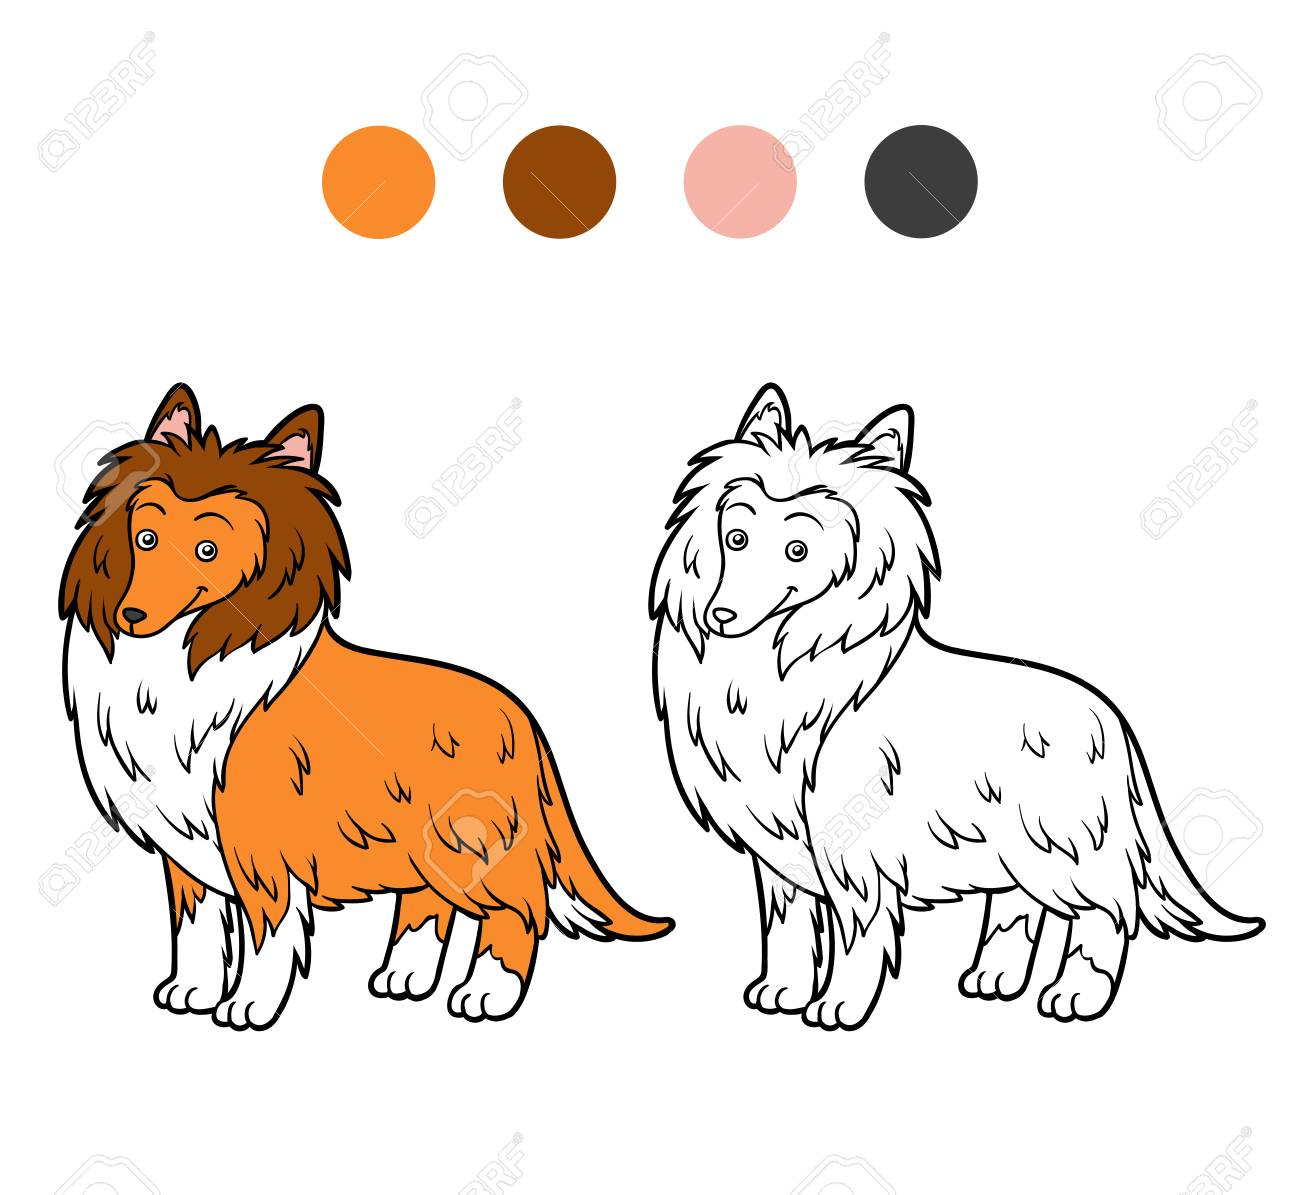 Animal Coloring Book Kids Colored Guide And Black And White